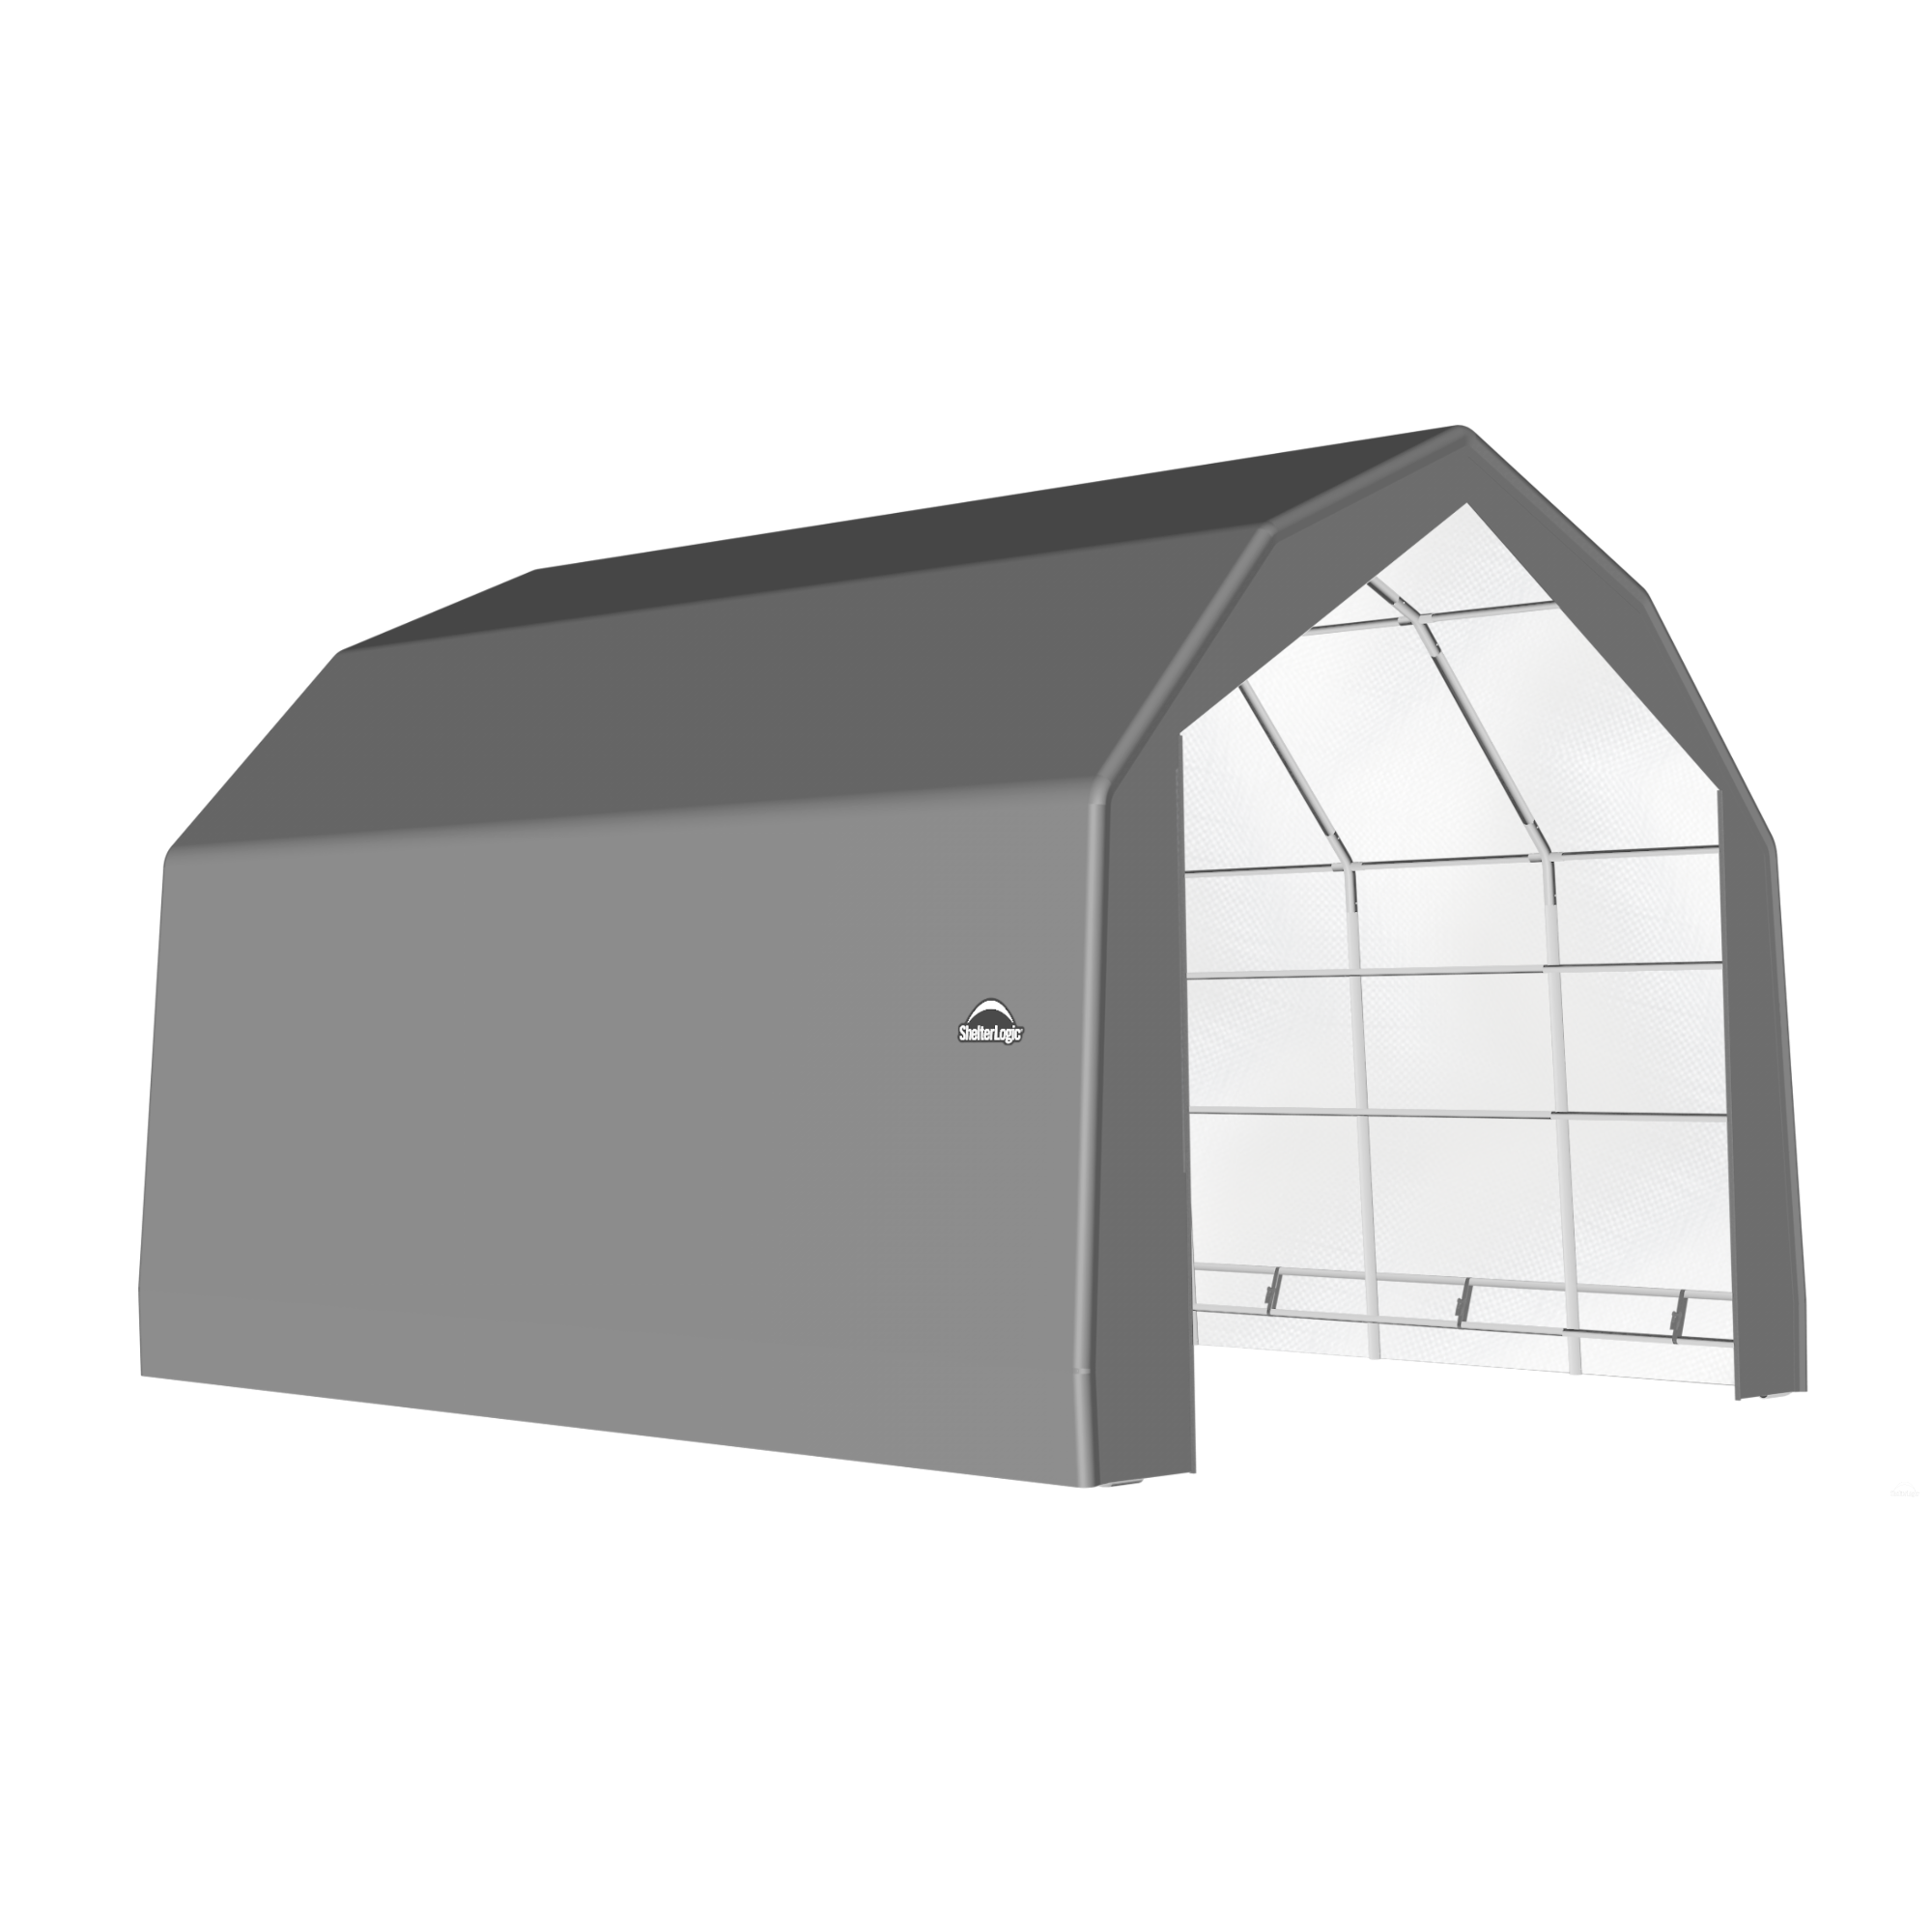 SP Barn 20X20X15 Gray 14 oz PE Shelter